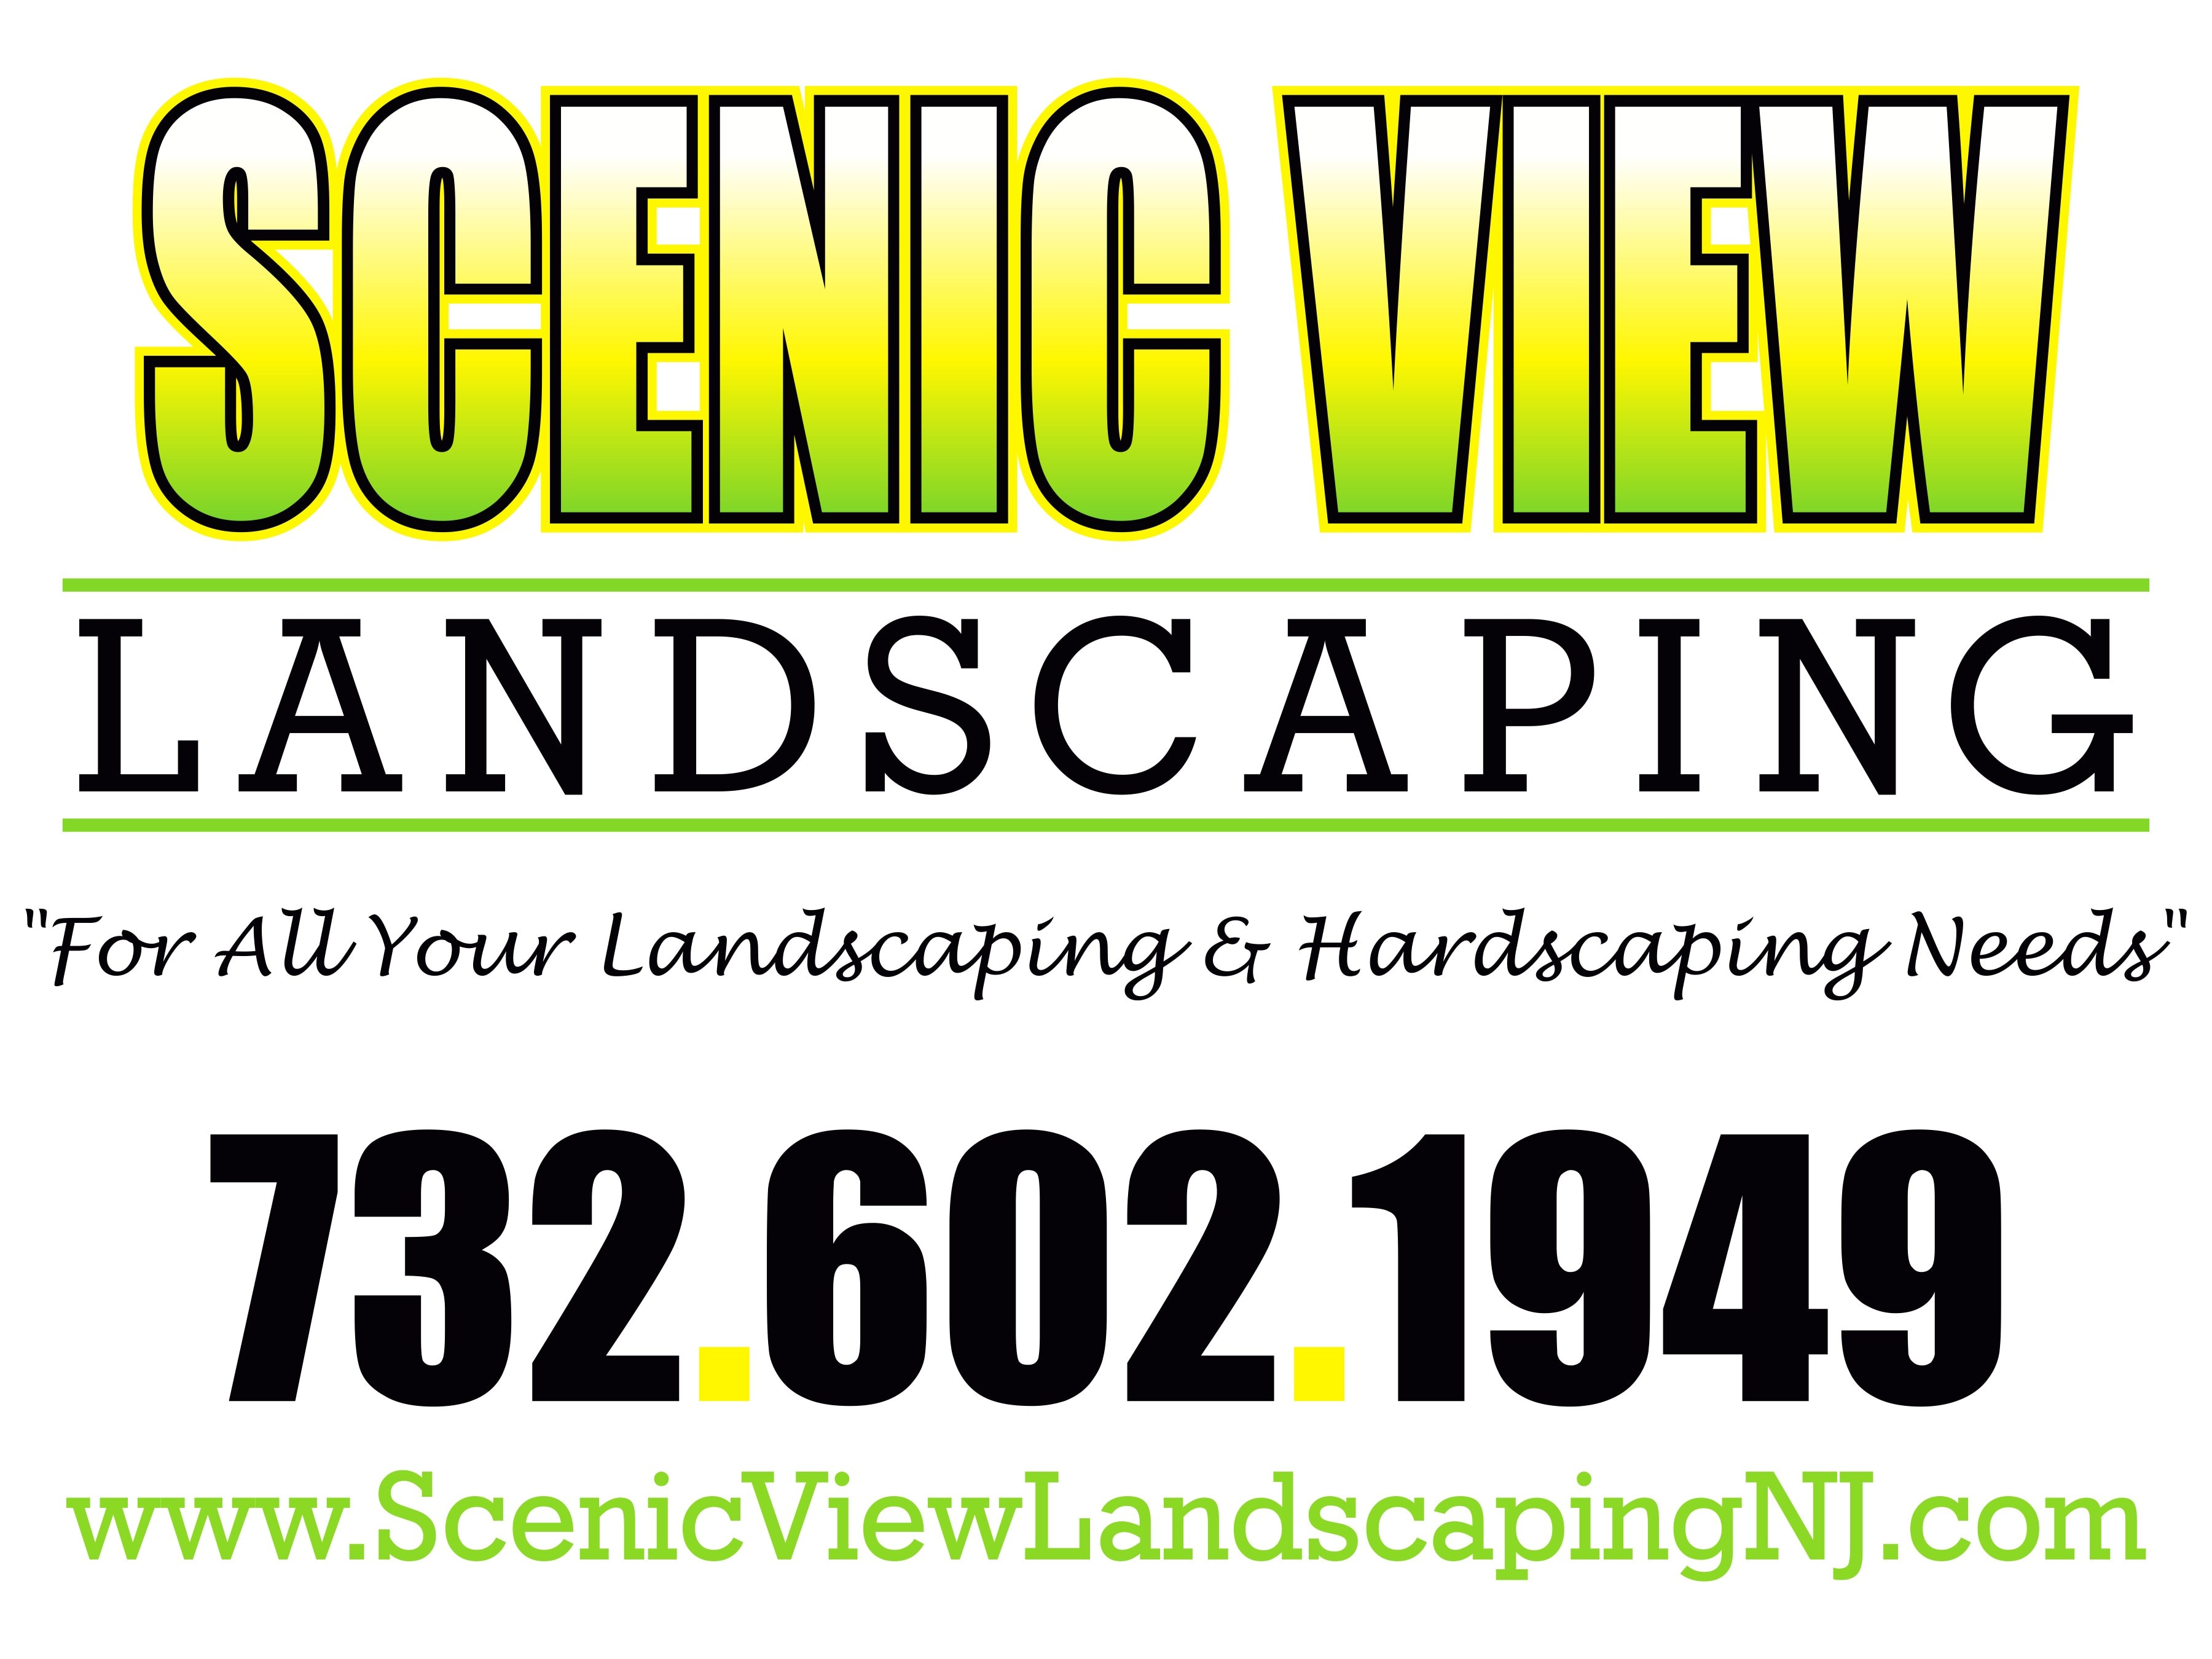 Scenic View Landscaping & Design Specialists LLC logo